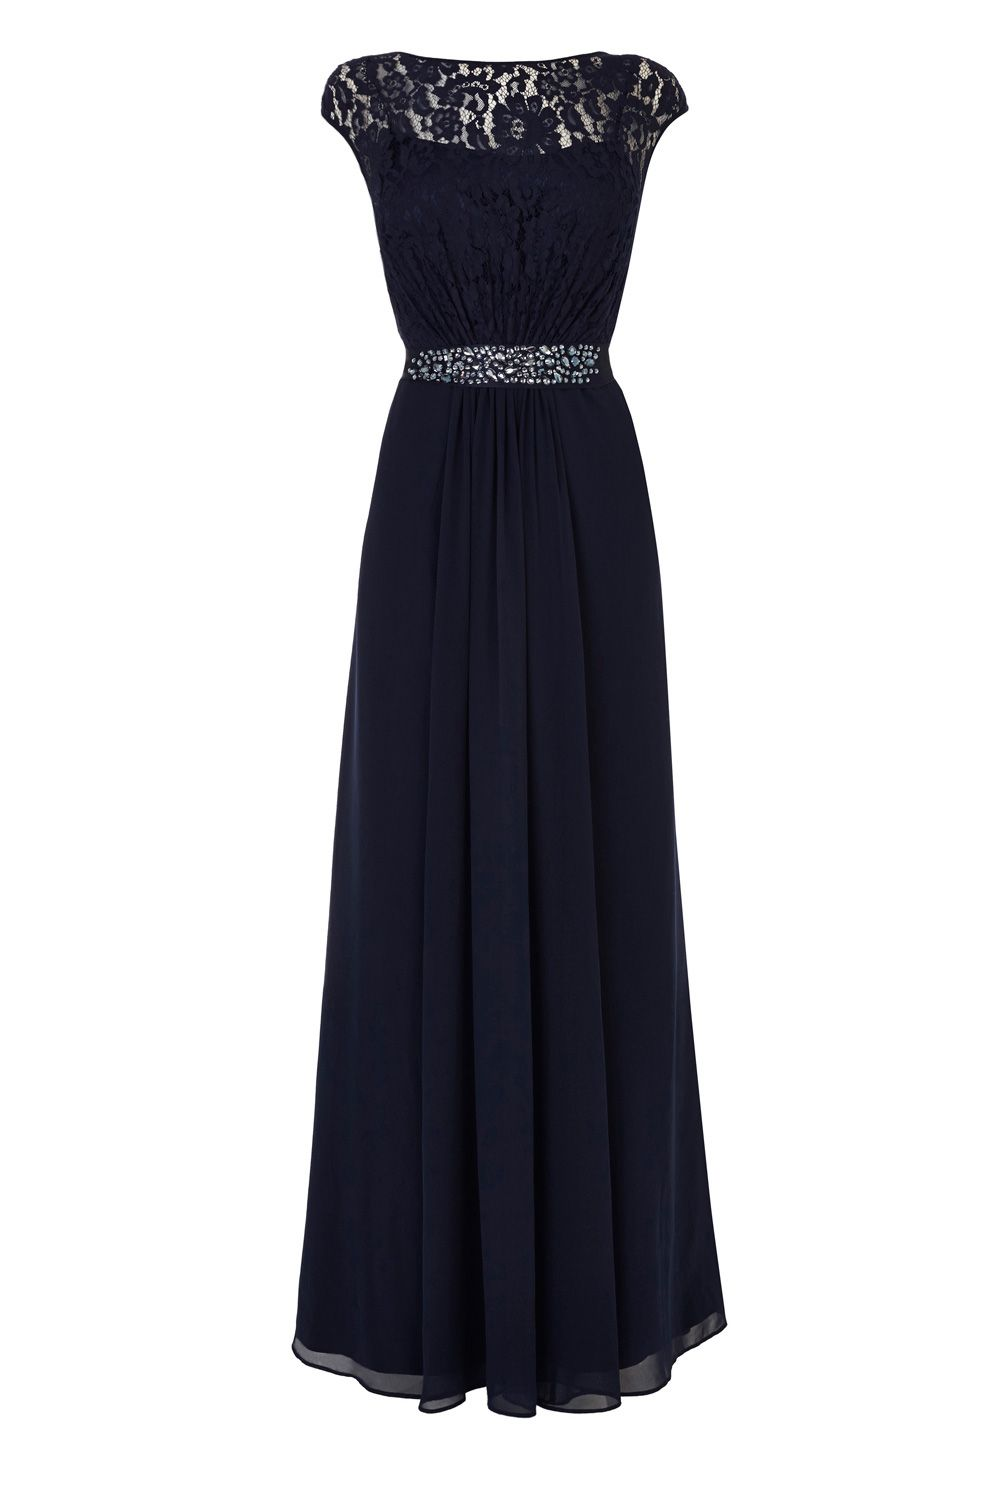 Murphy l prom dresses on clearance